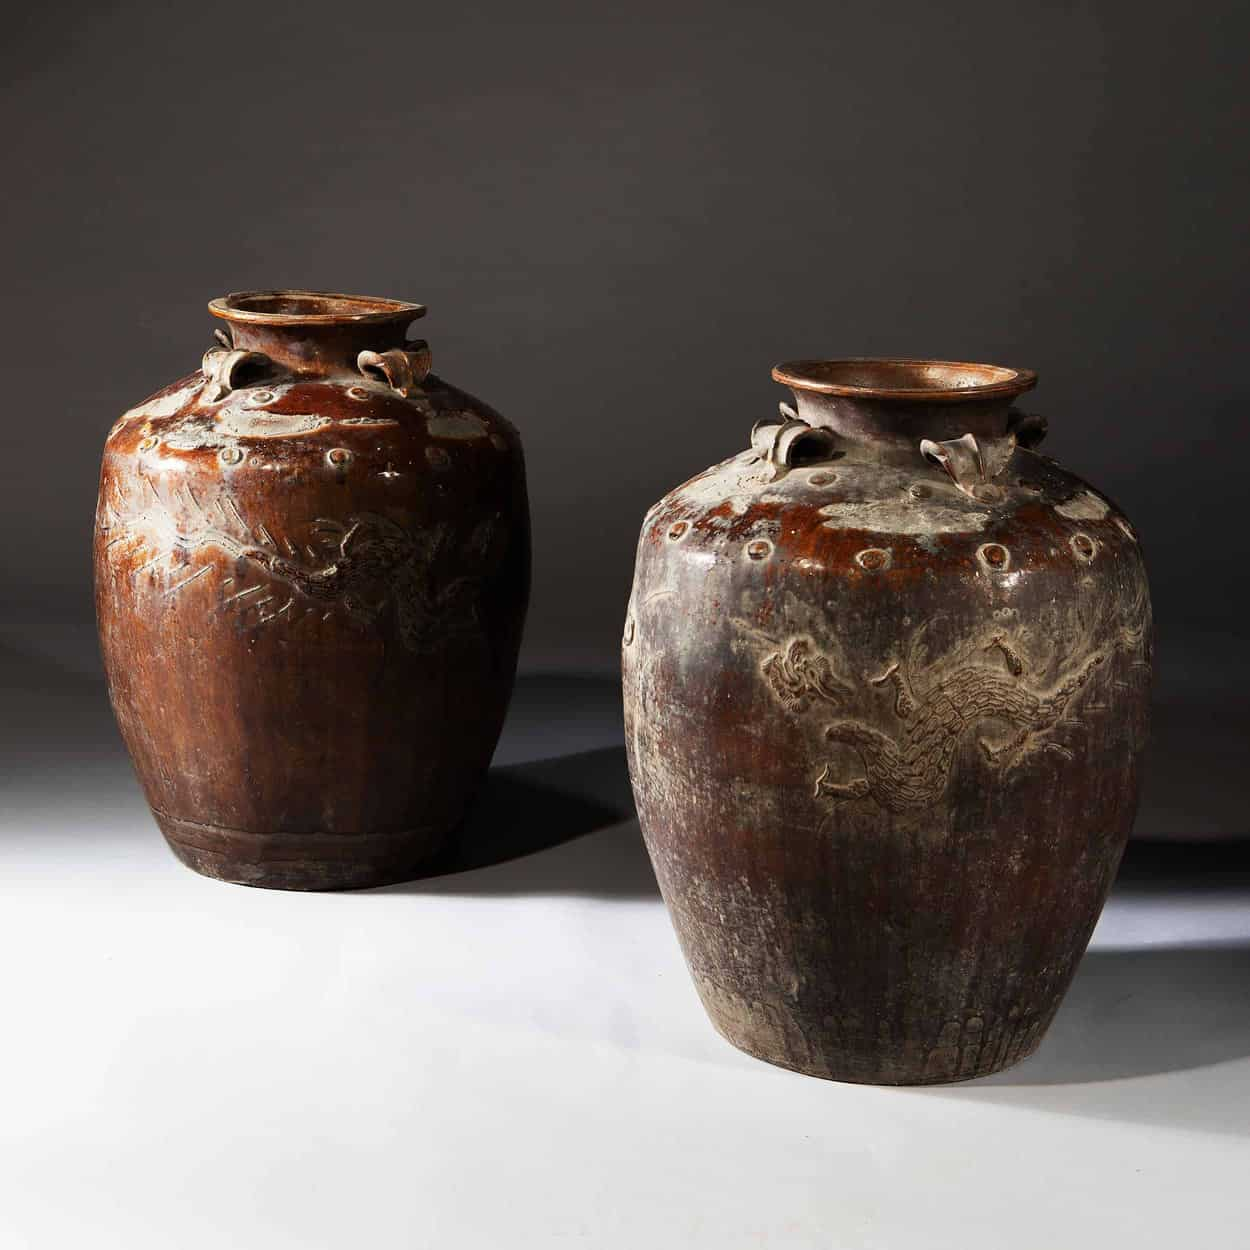 Pair Of Large Scale South Chinese Pottery Storage Jars Nicholas Wells Antiques Ltd Antique Dealers London Masterpiece Located In London